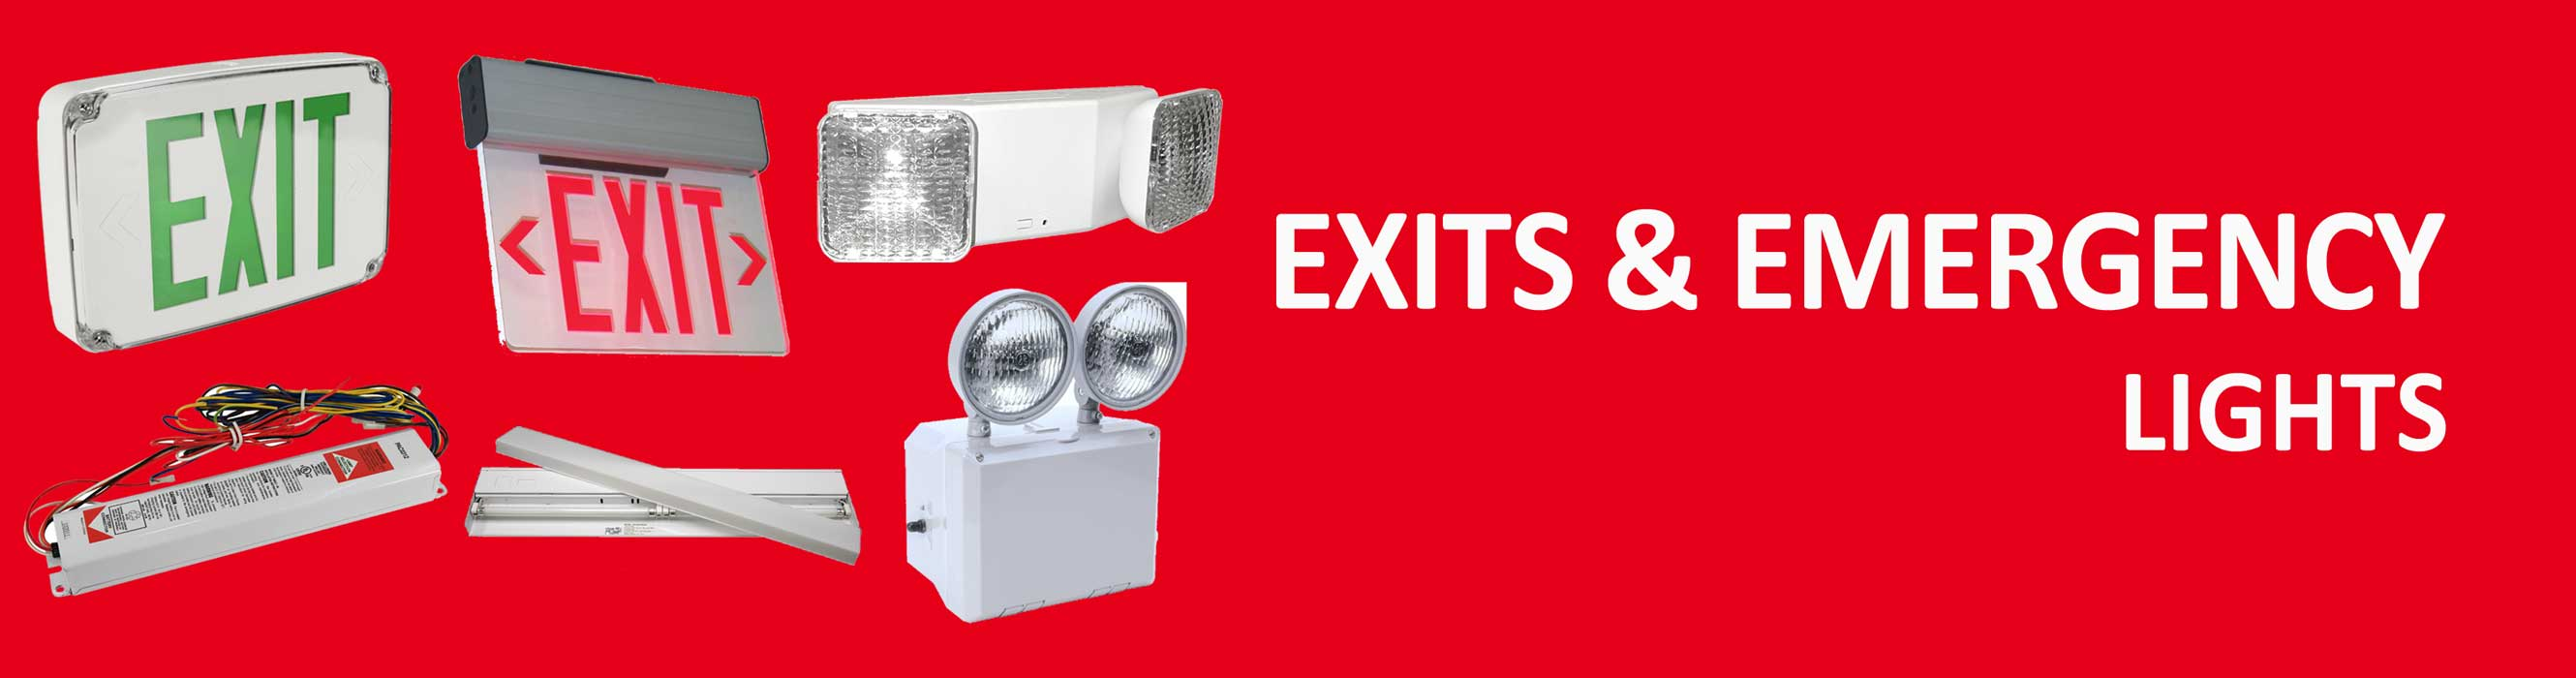 exit and emergency lights section